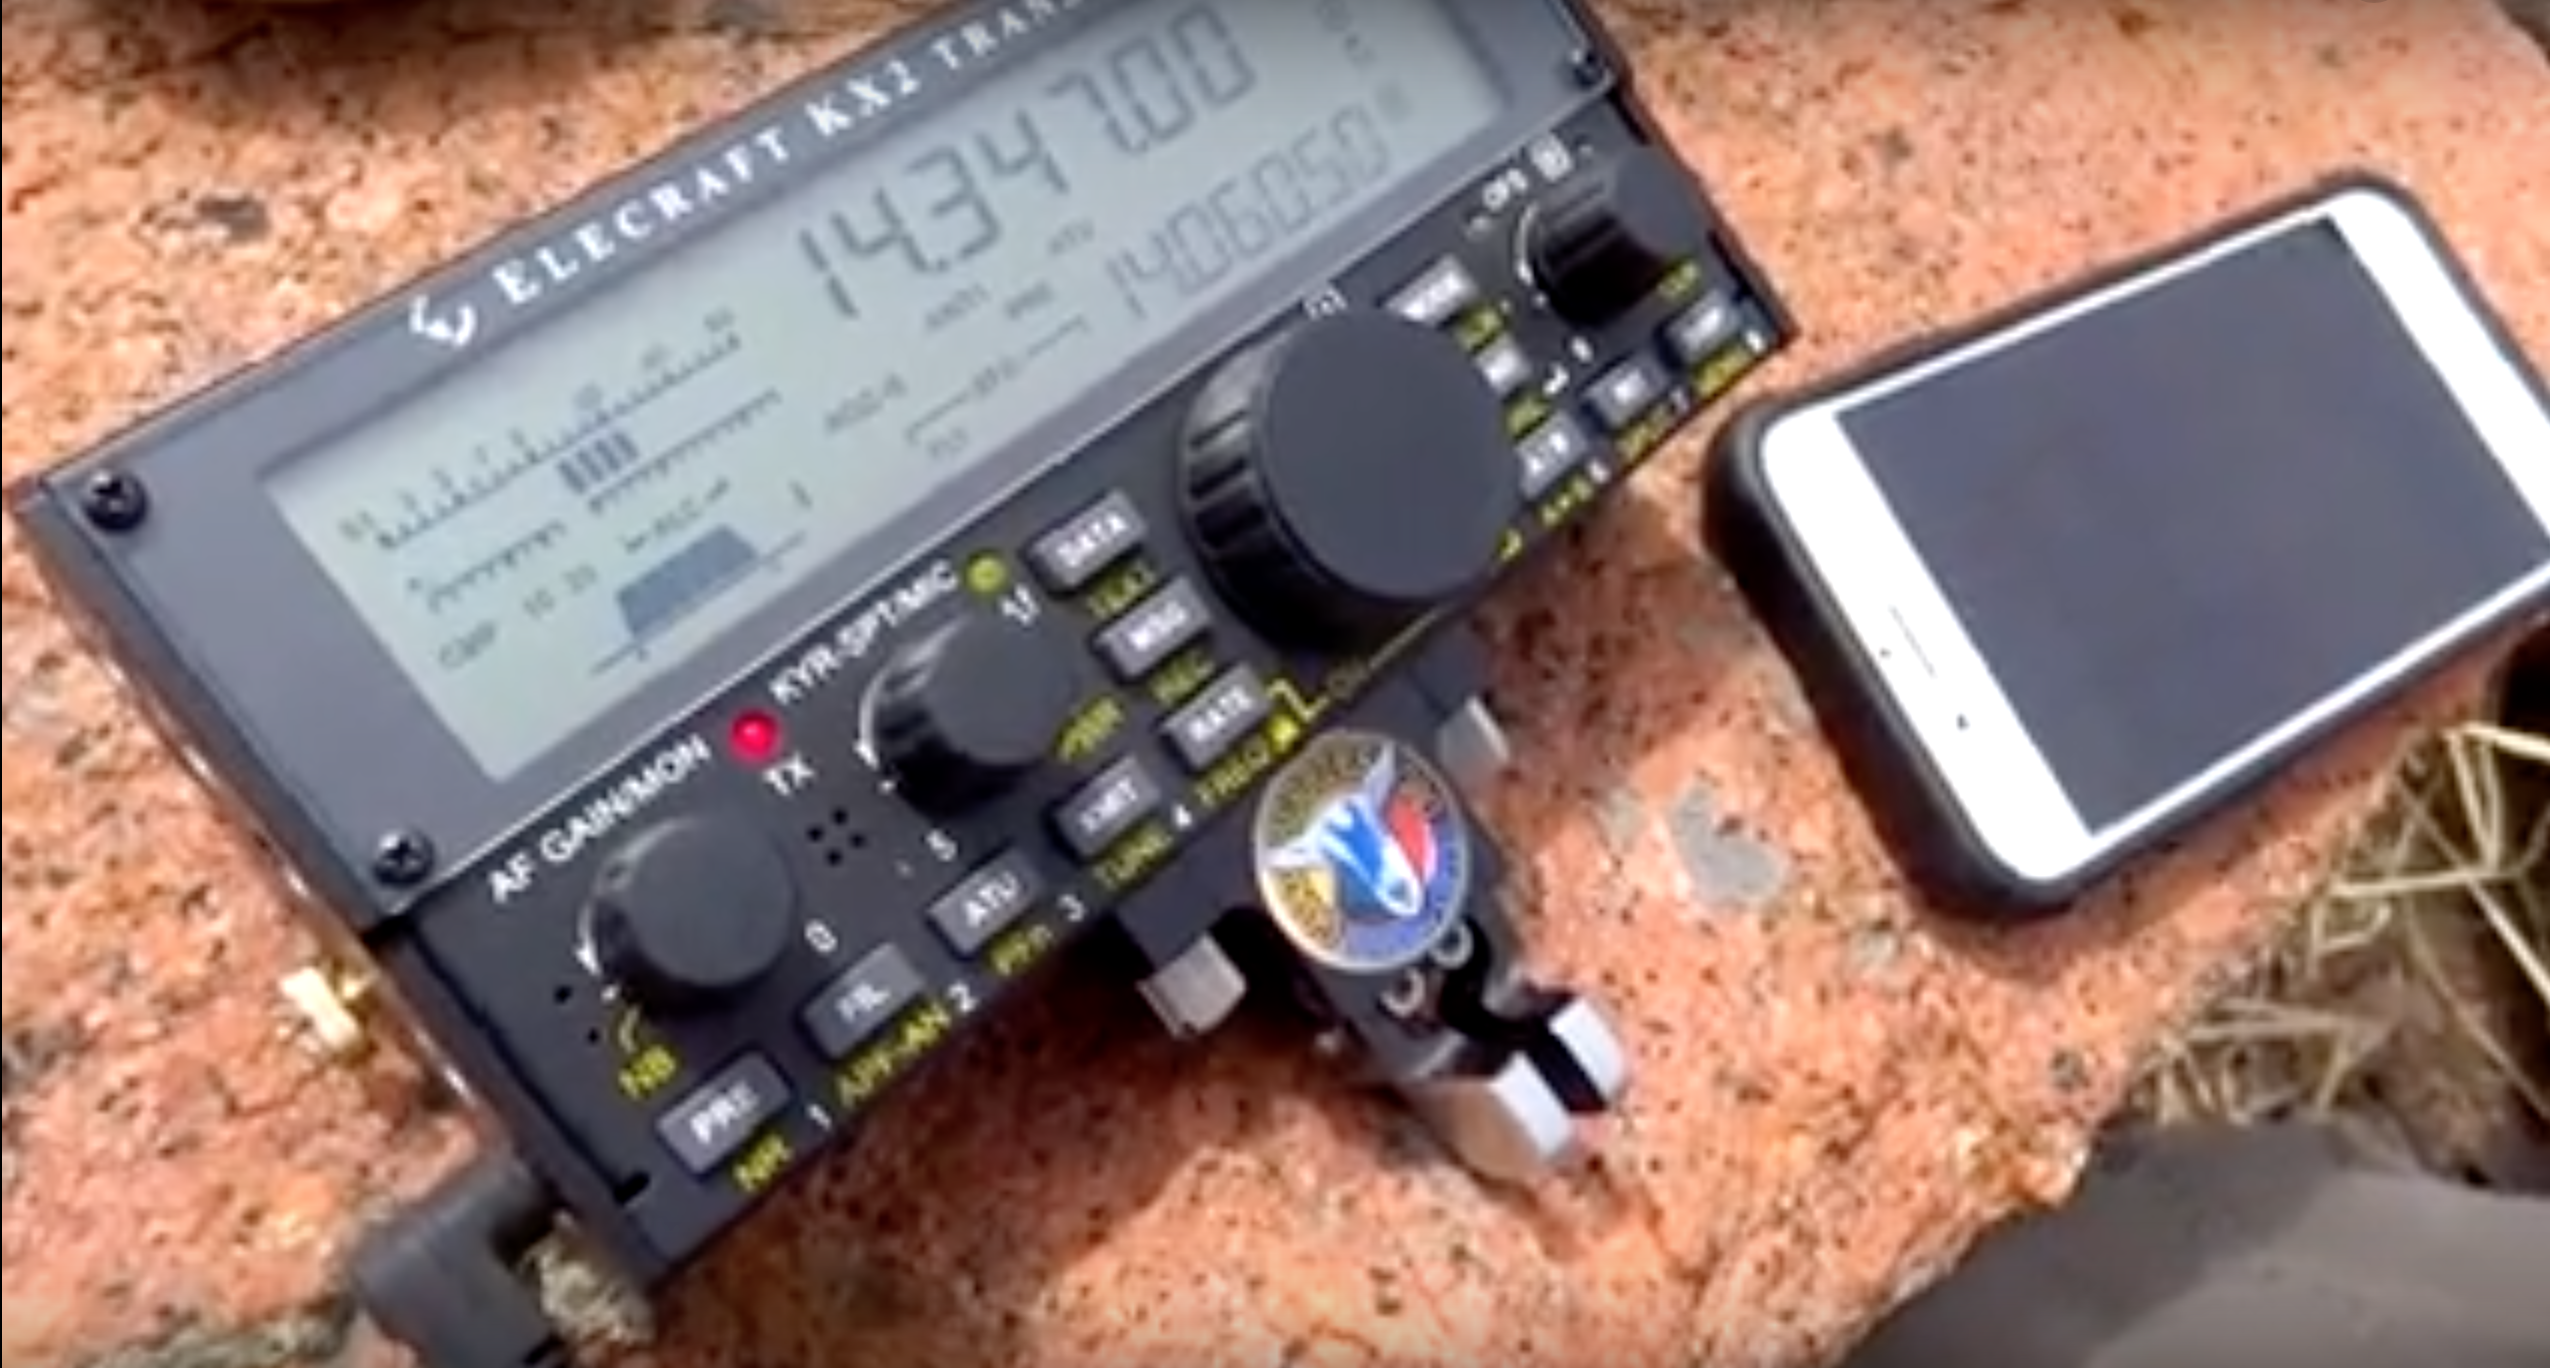 Elecraft KX2 Transceiver - The QRP world